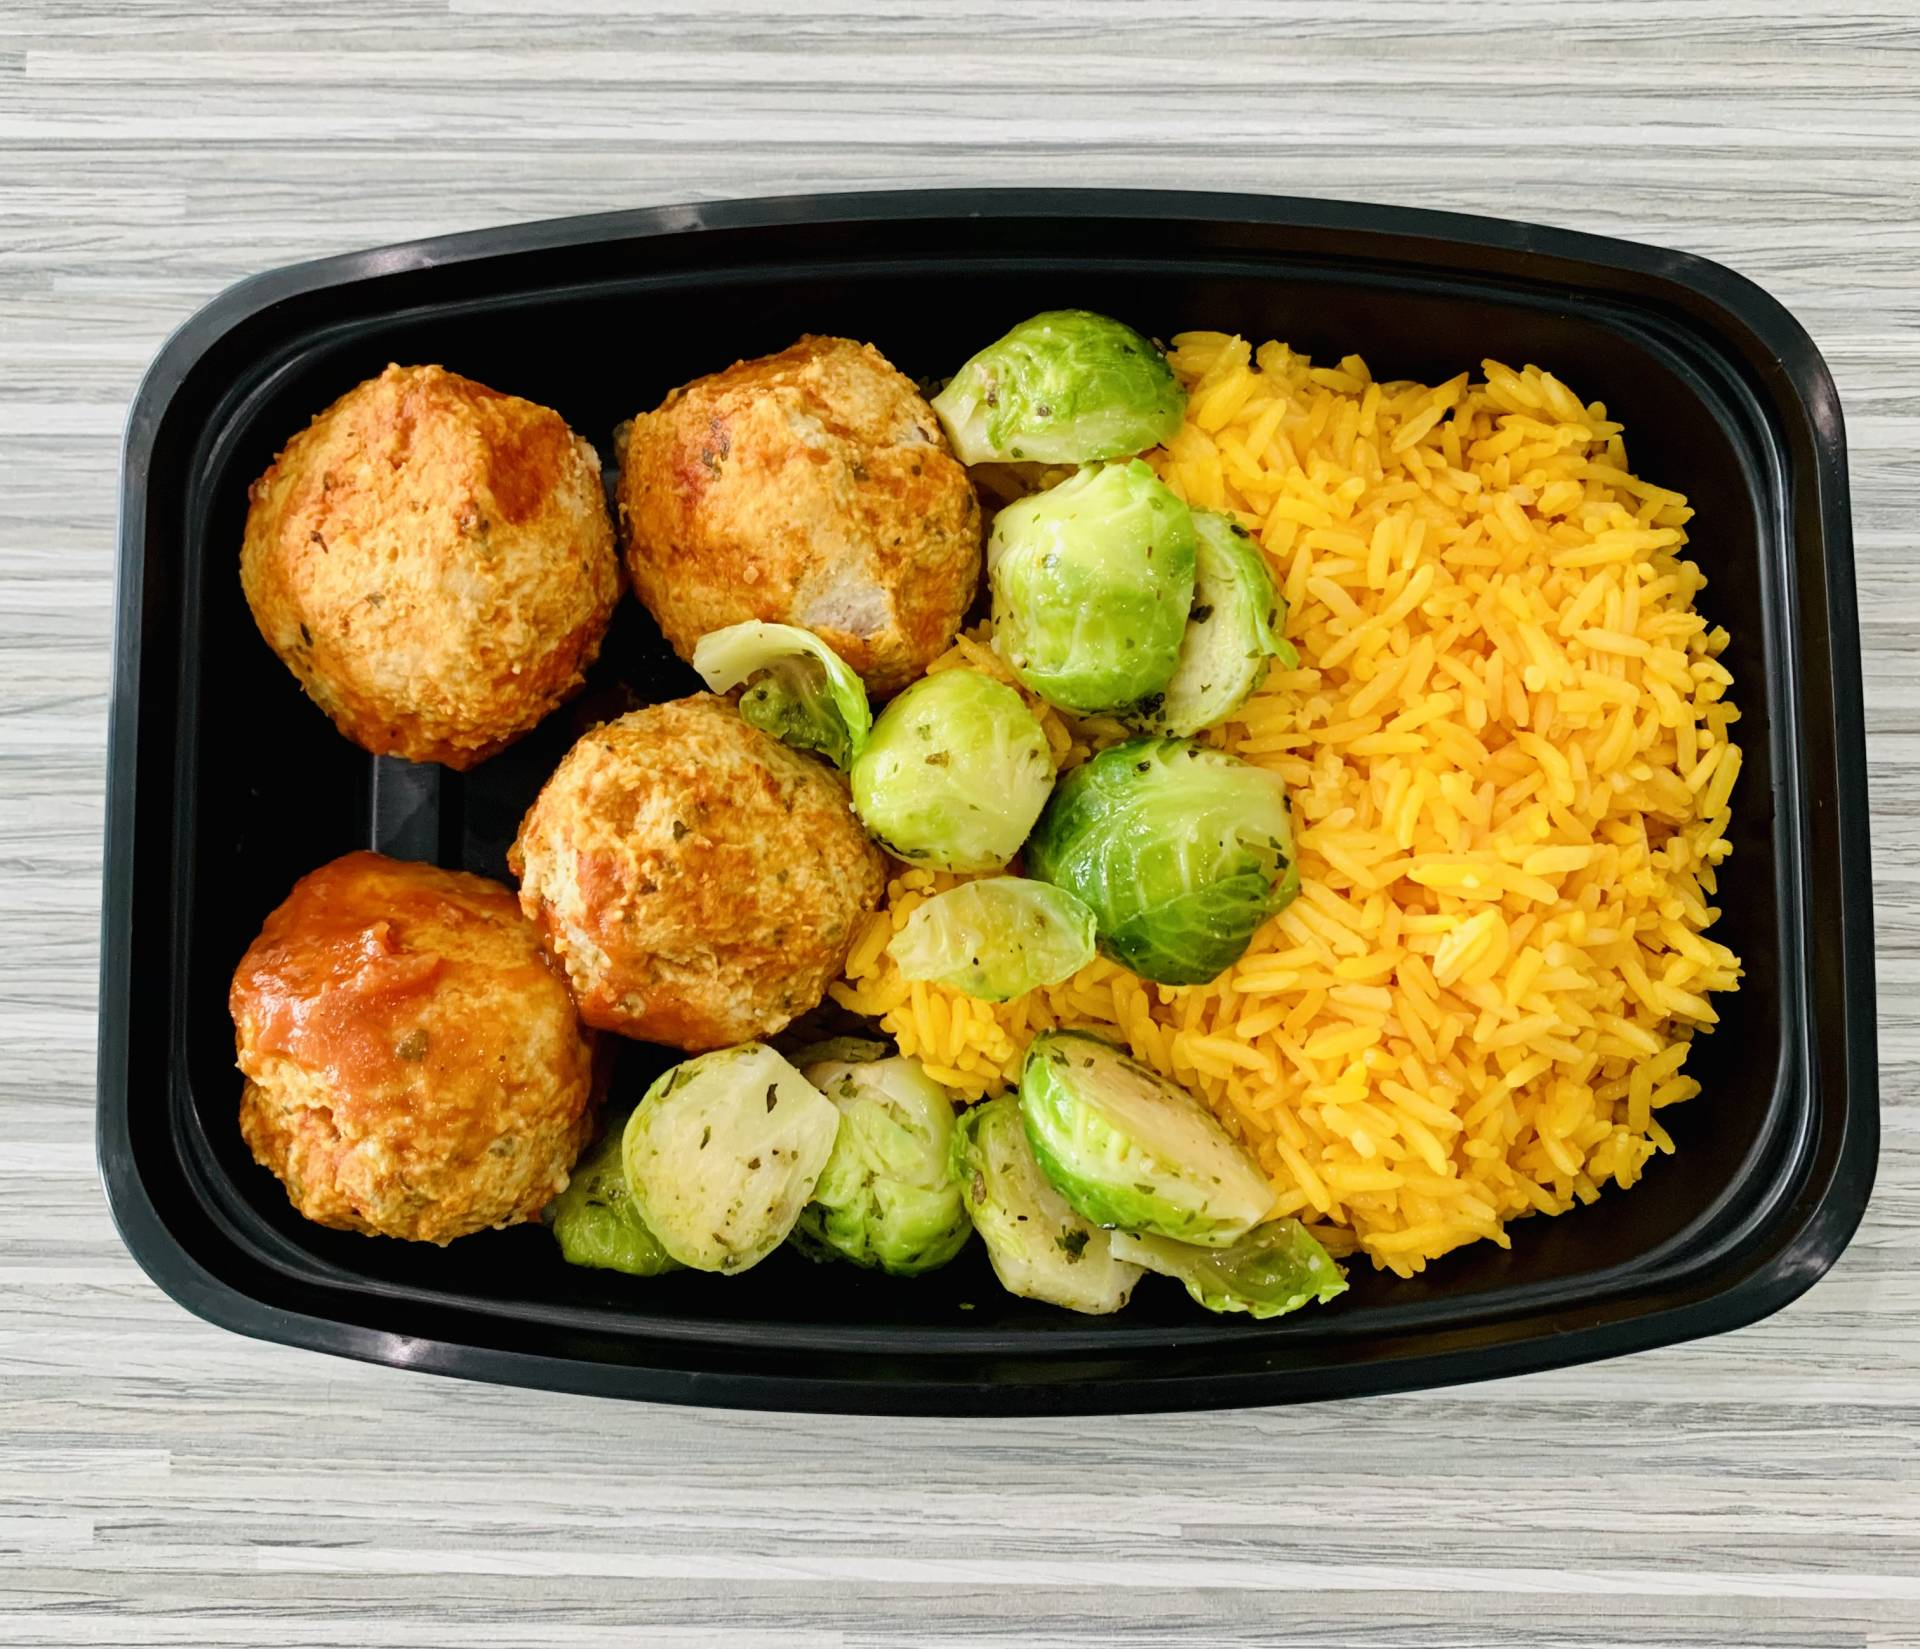 Turkey Meatball, Yellow Rice and Brussels Sprouts